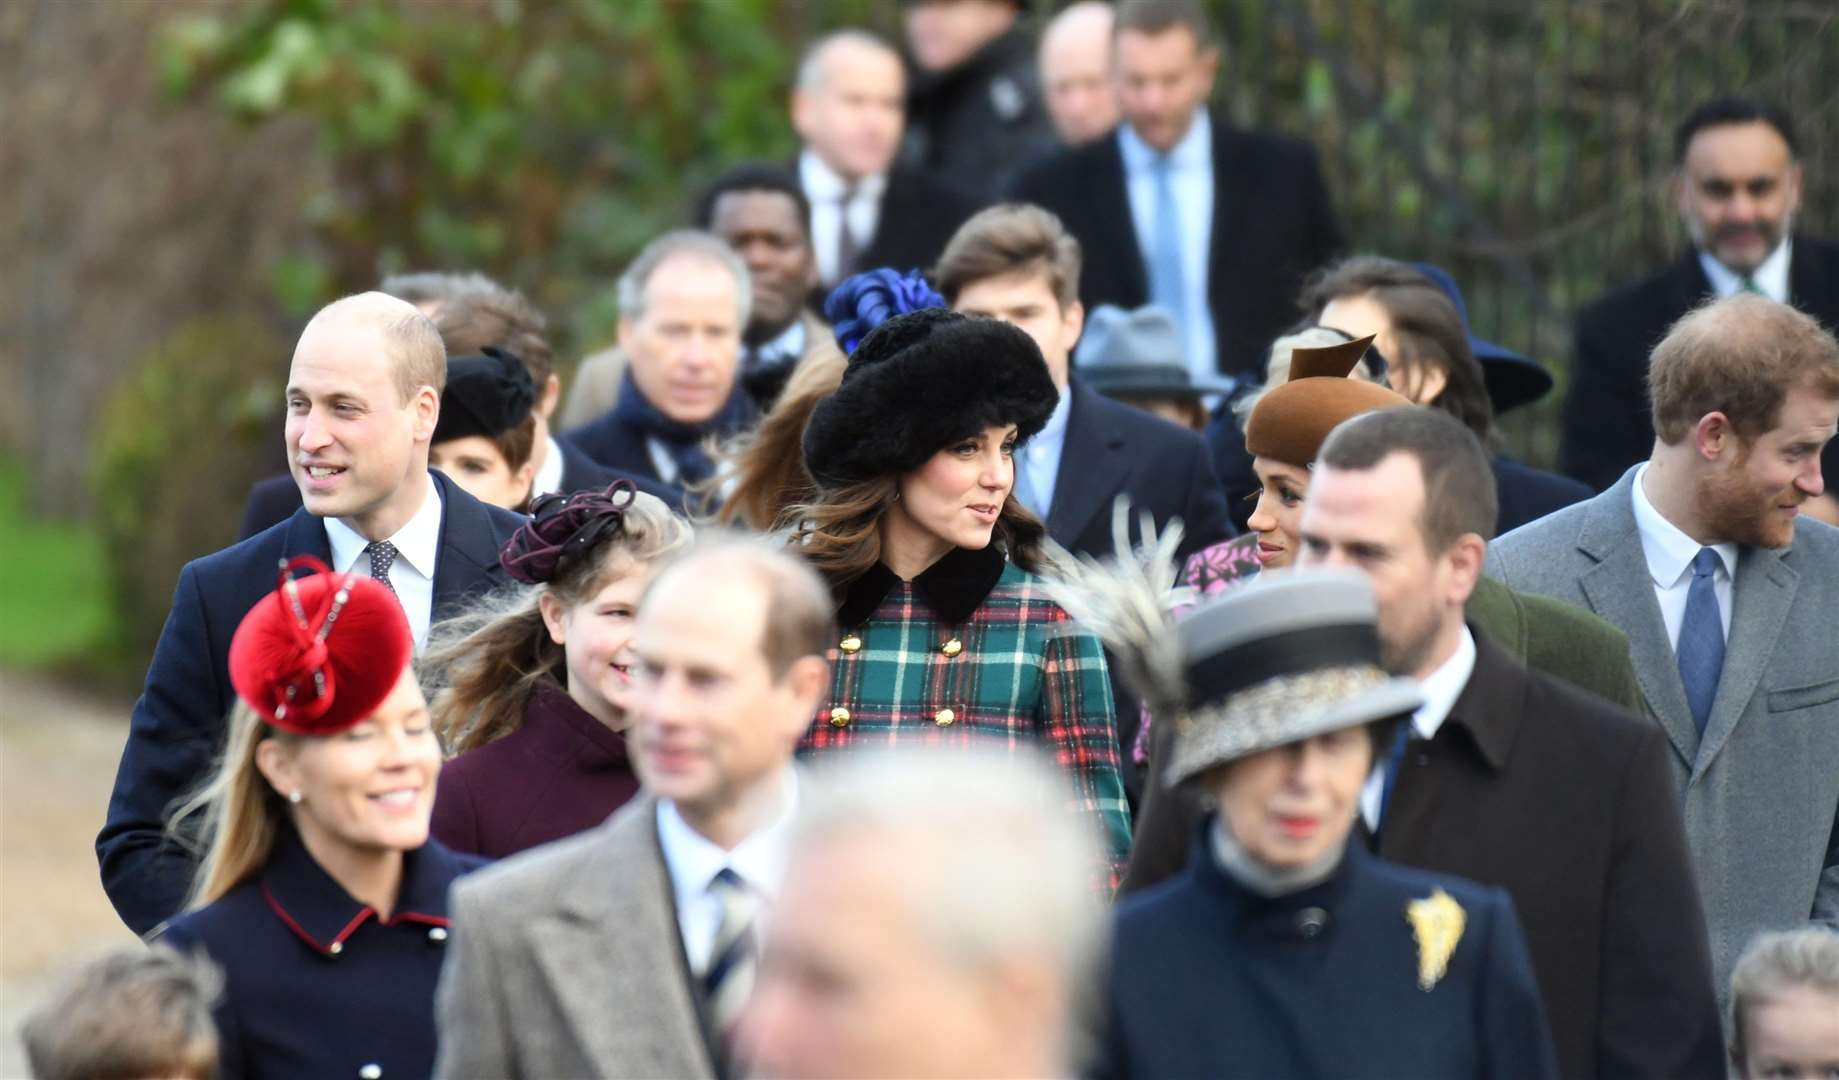 Meghan Markle Makes Surprise Appearance at London College Campus!